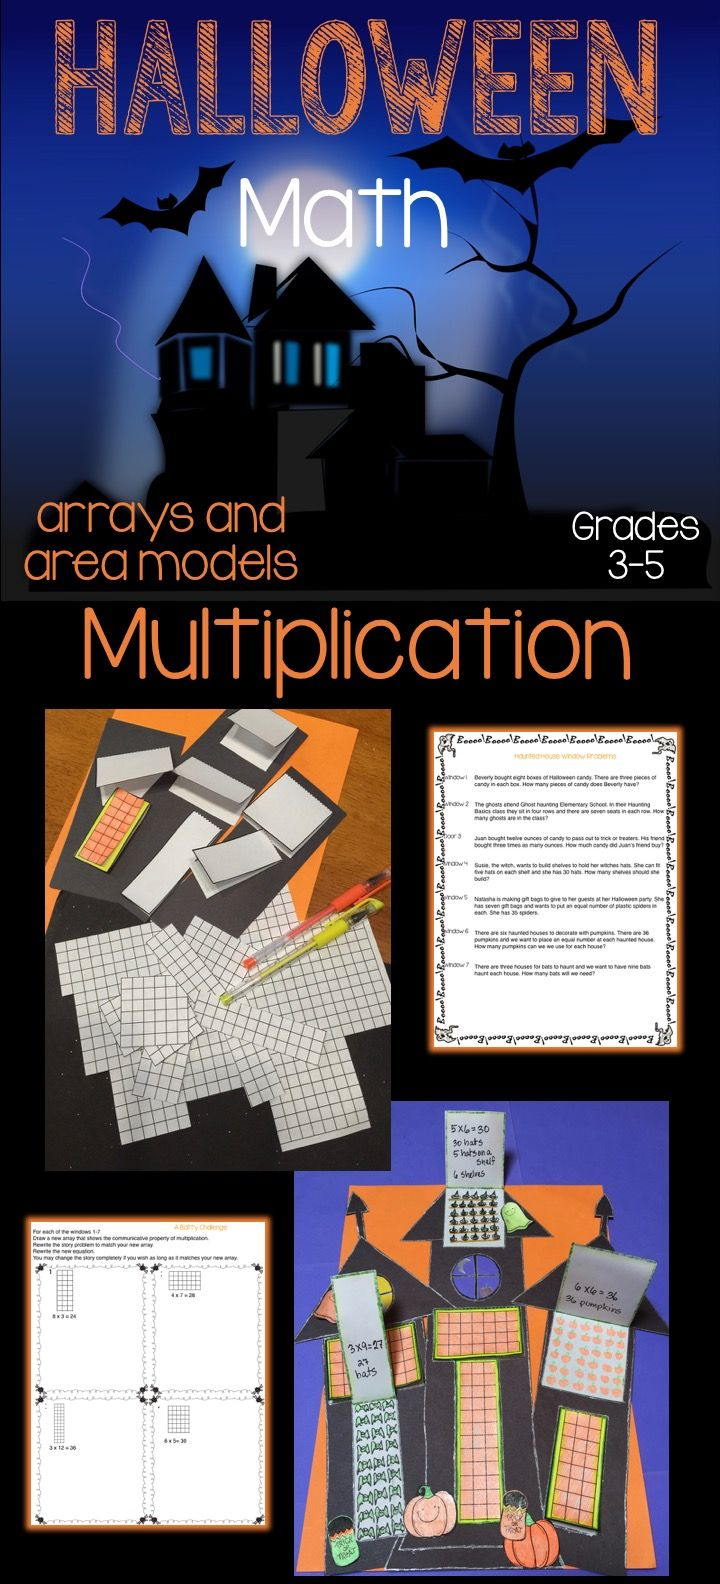 Create haunted houses for a Halloween themed multiplication project. For each story problem your students will build an area model window, write the equation and draw an array model inside the flap.